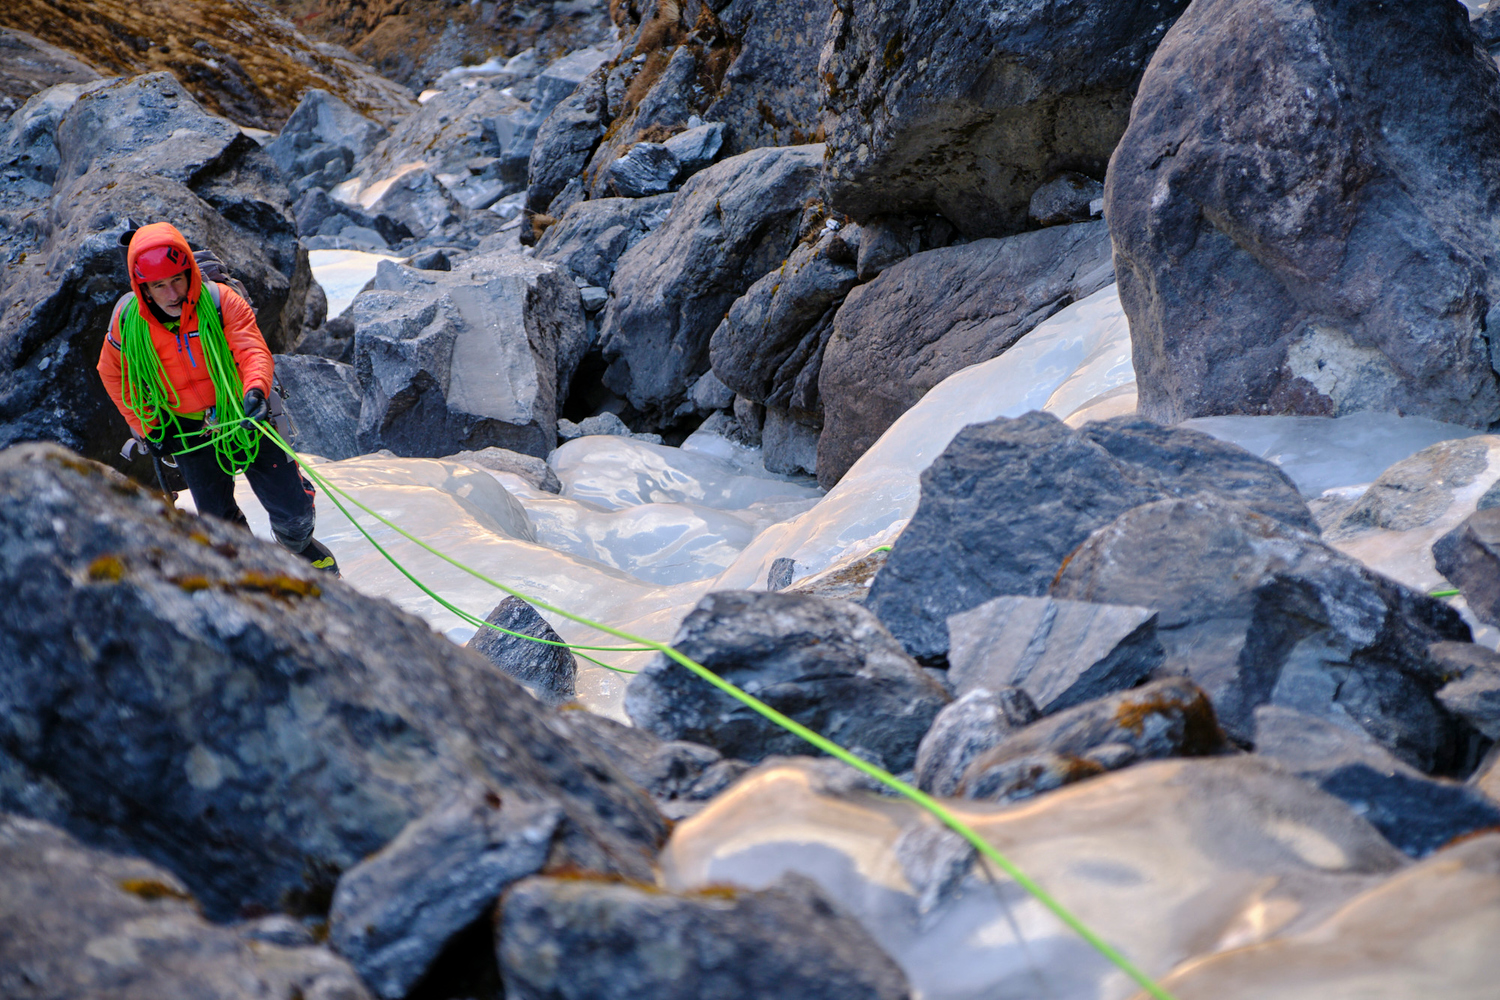 A climber rappeling an ice slope.